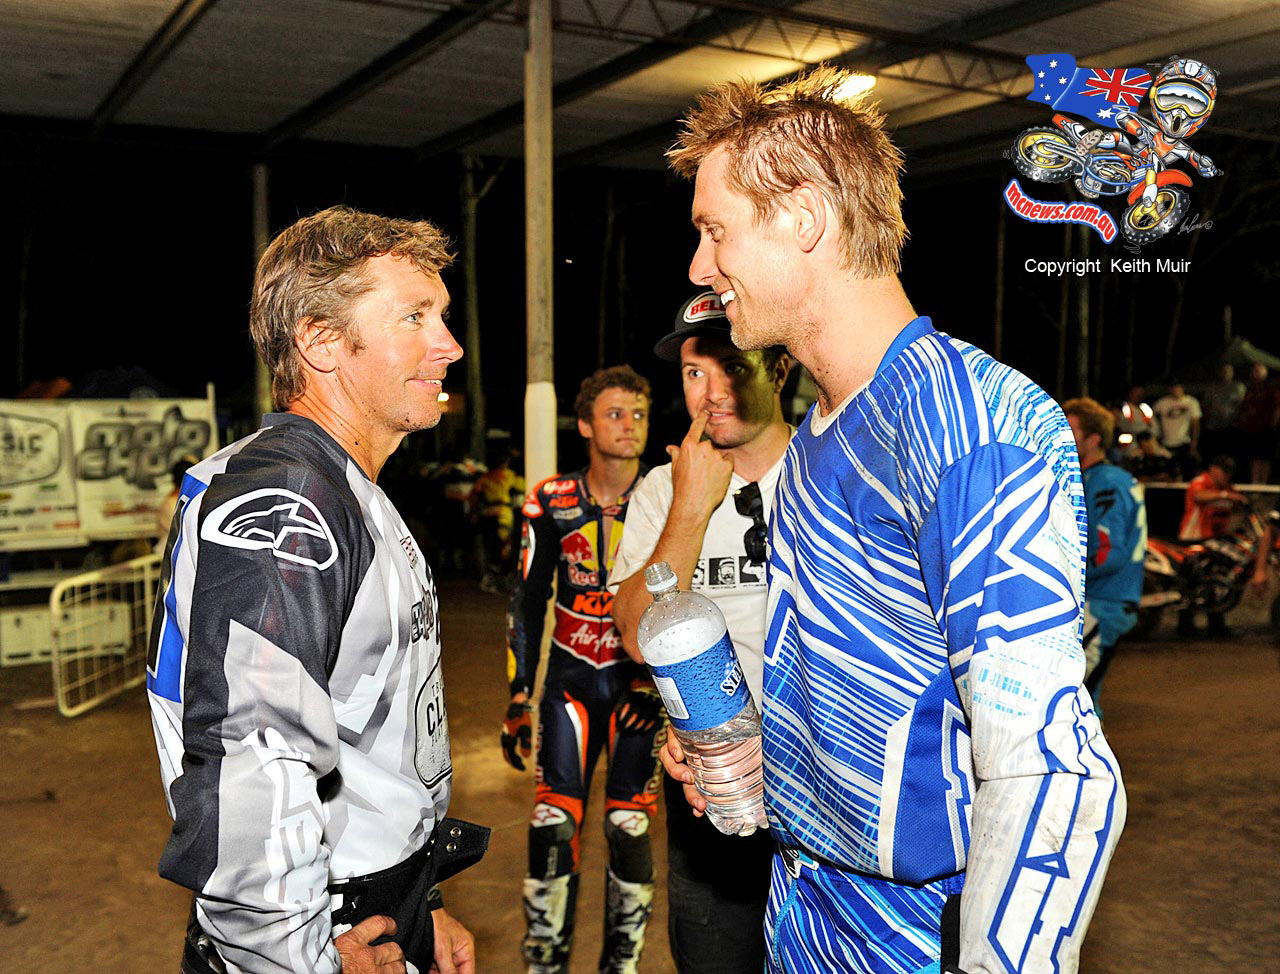 Troy Herfoss with Troy Bayliss. They finished 1-2 at the recent star studded Troy Bayliss Classic Dirt Track event.